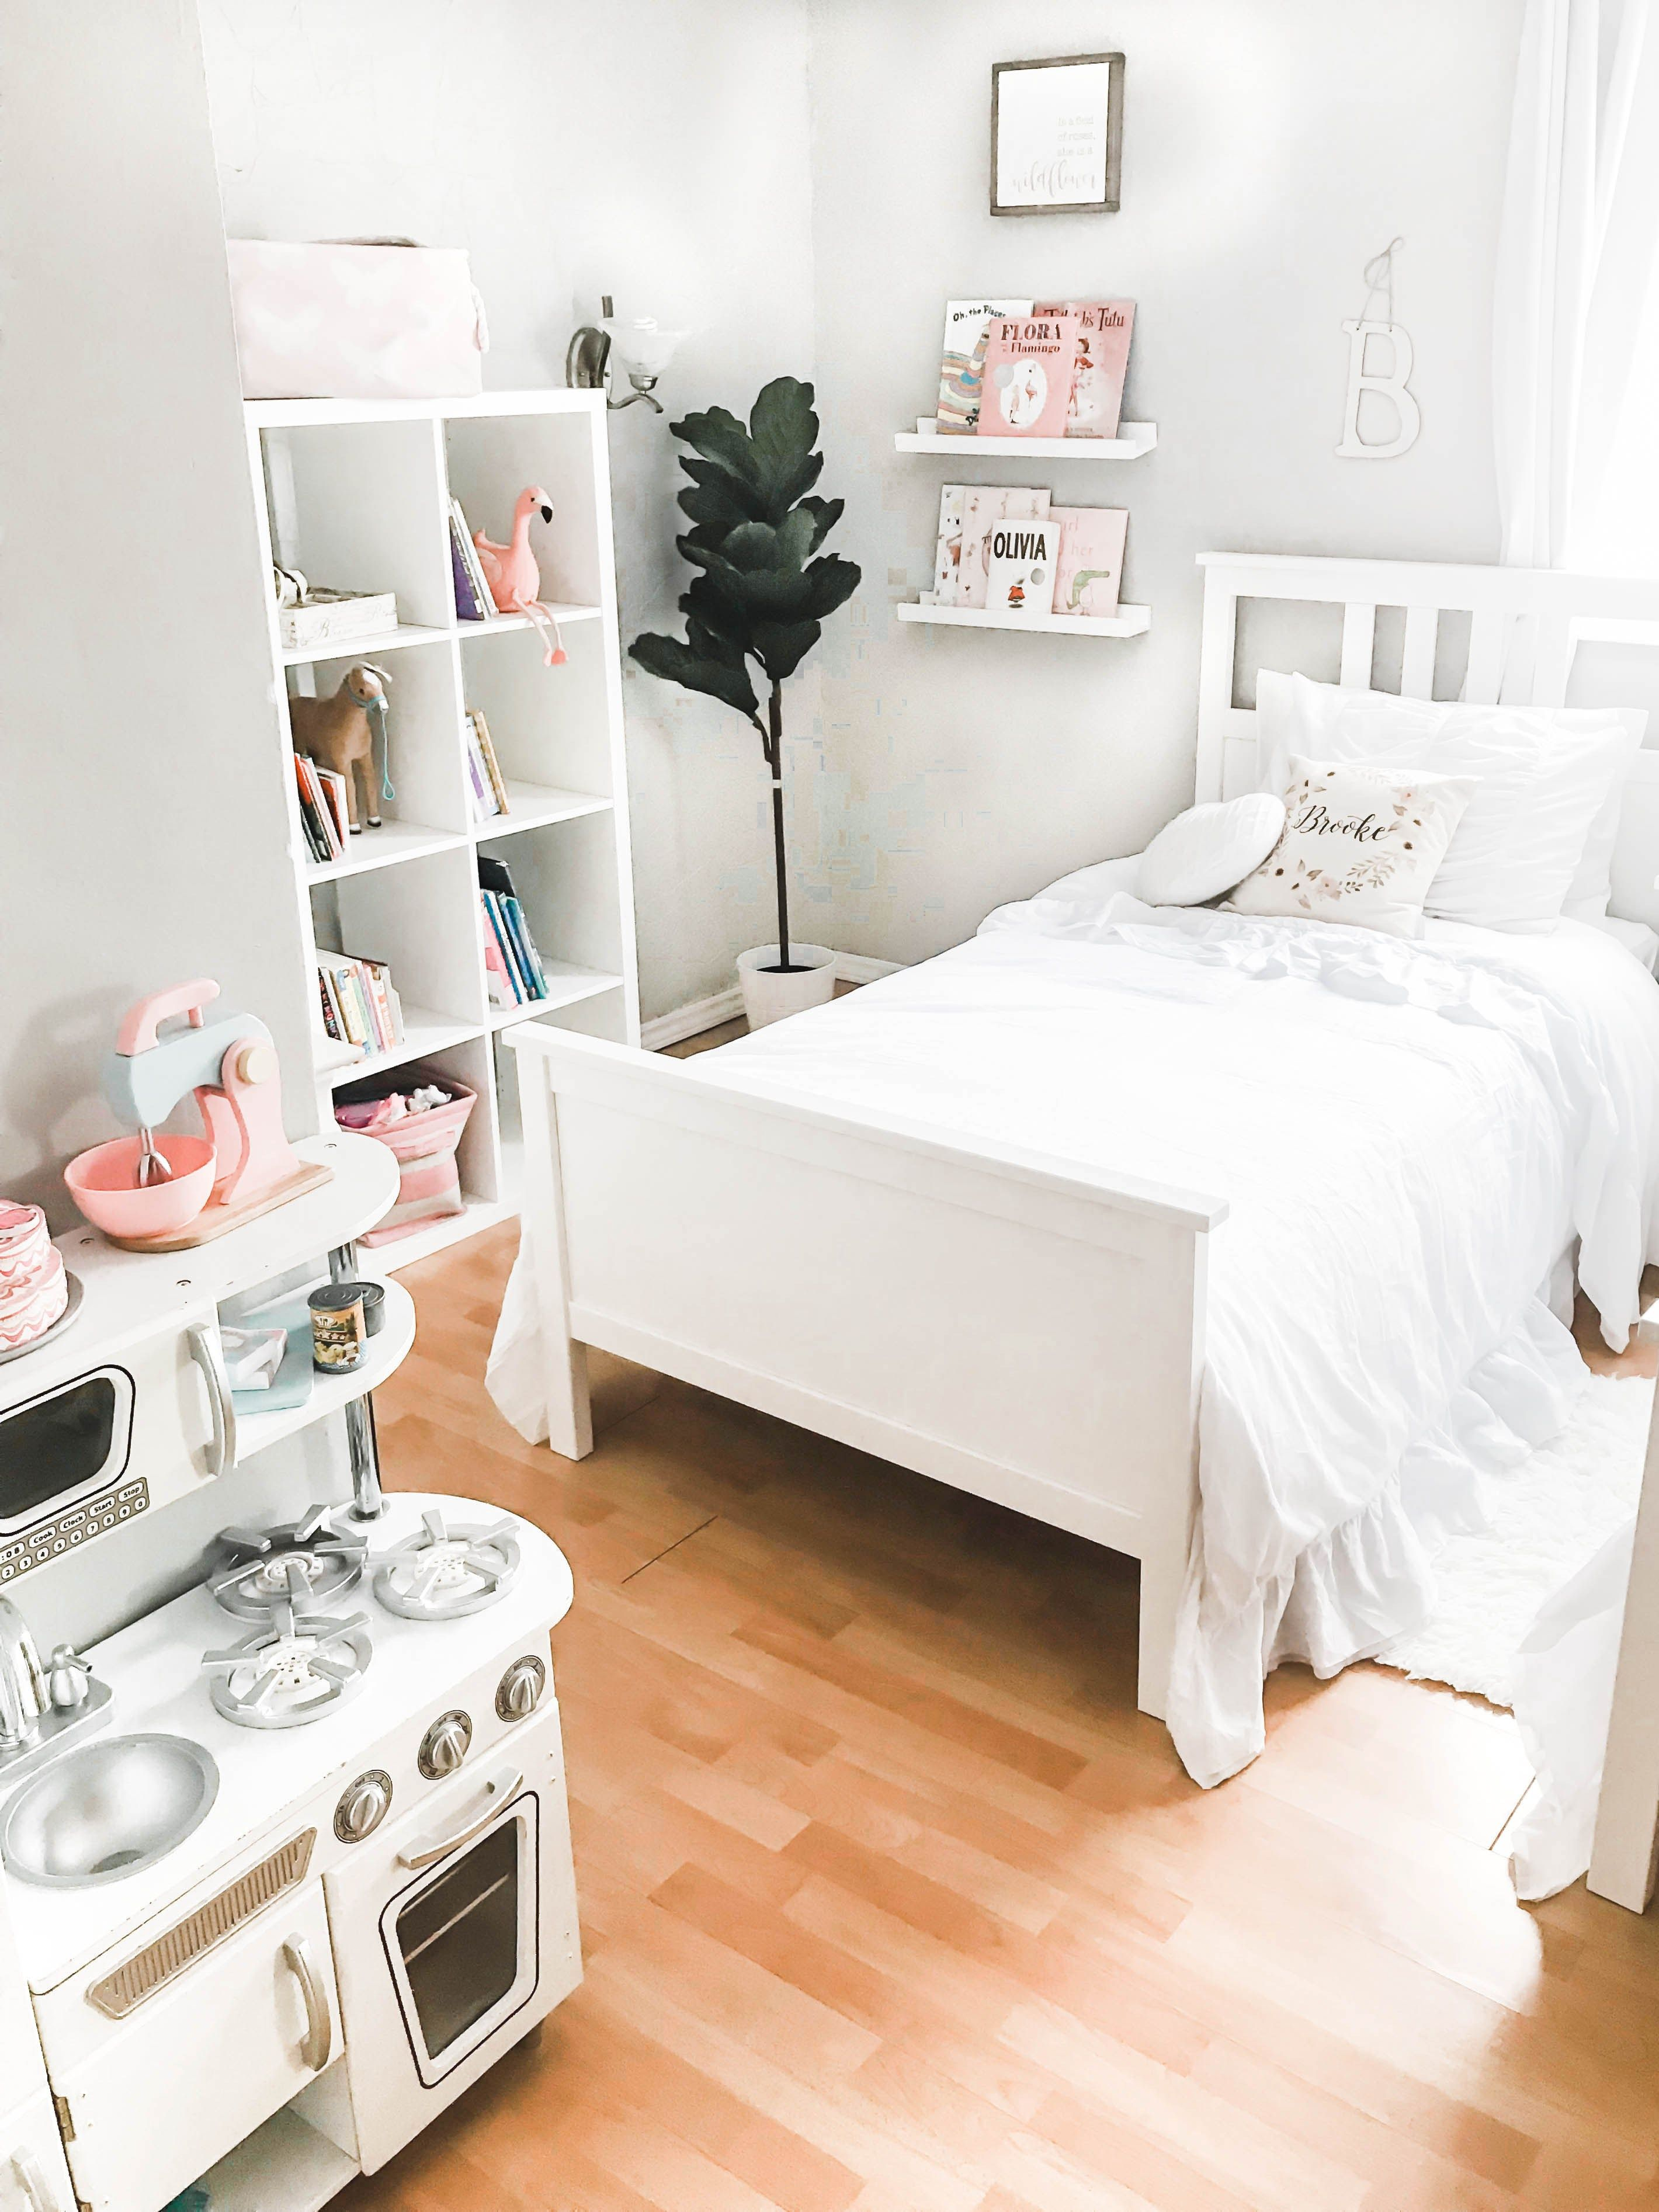 Here Iu0027ll Be Sharing All Of The Details Of Our 3 Year Old And 4 Year Old  Girlsu0027 Shared Bedroom Update. A Room Made Up Of Neutral Tones, Soft Pink  Accents, ...